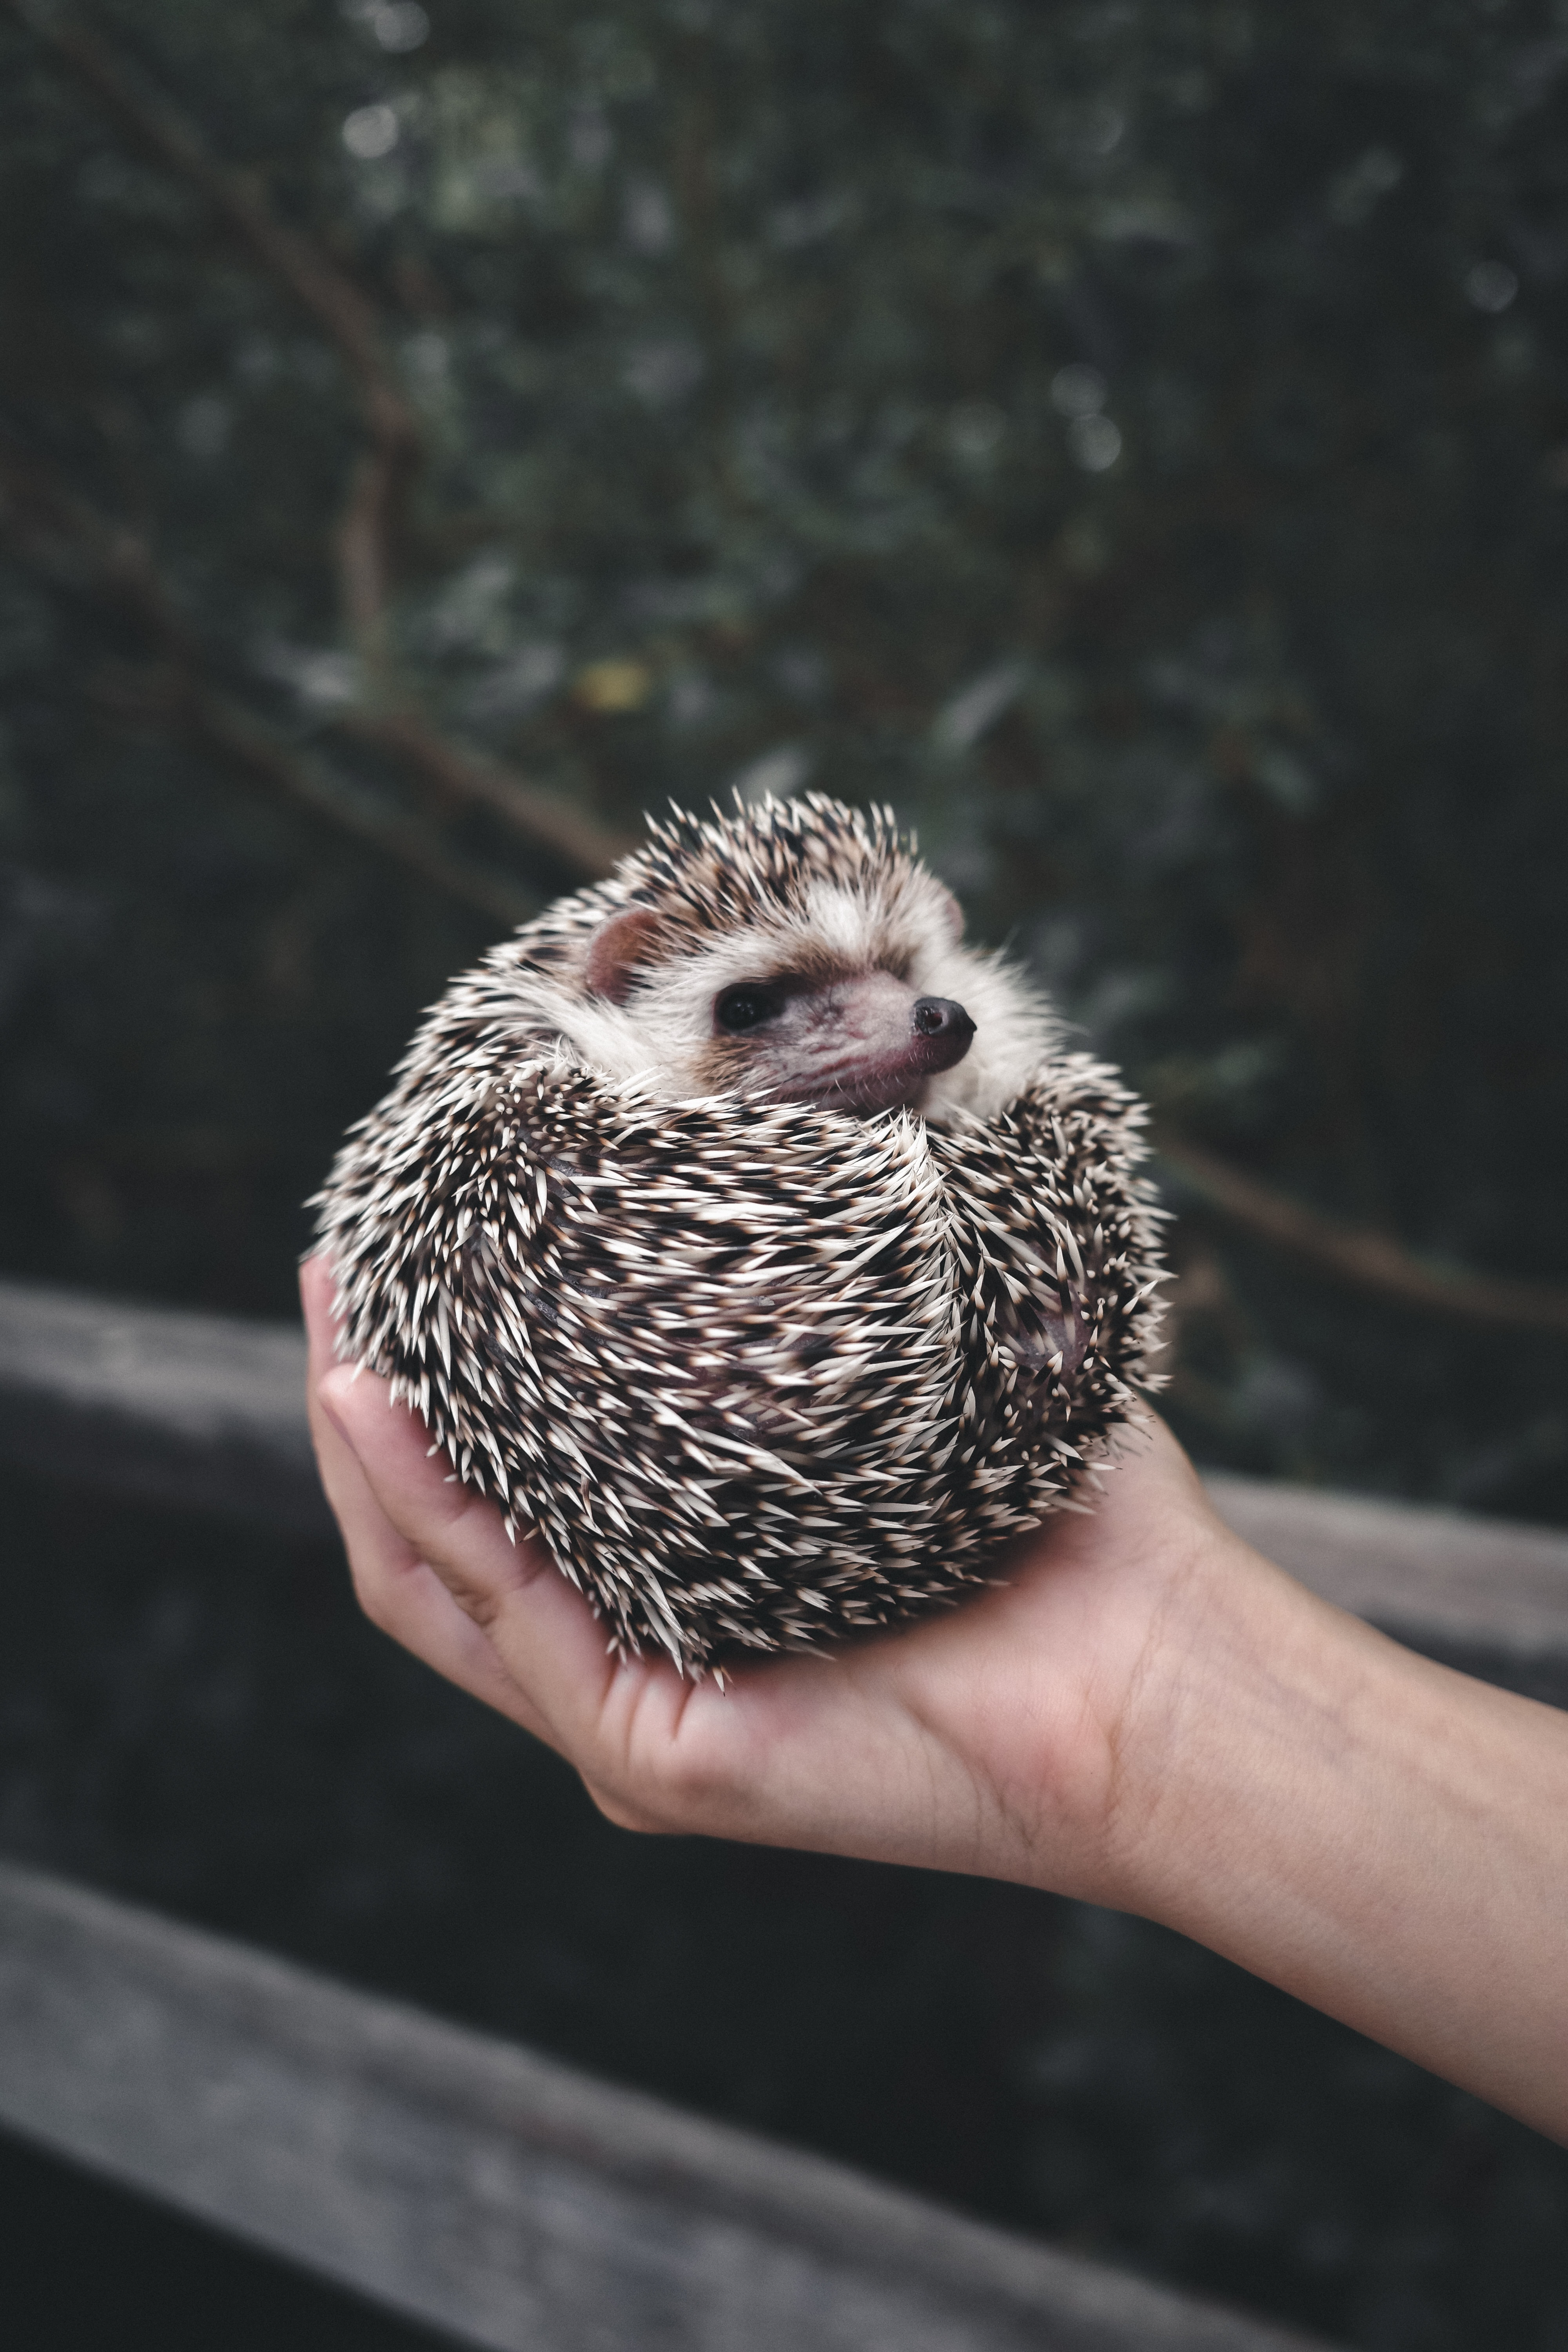 67319 download wallpaper Animals, Hedgehog, Animal, Barbed, Spiny, Hands, Nice, Sweetheart screensavers and pictures for free